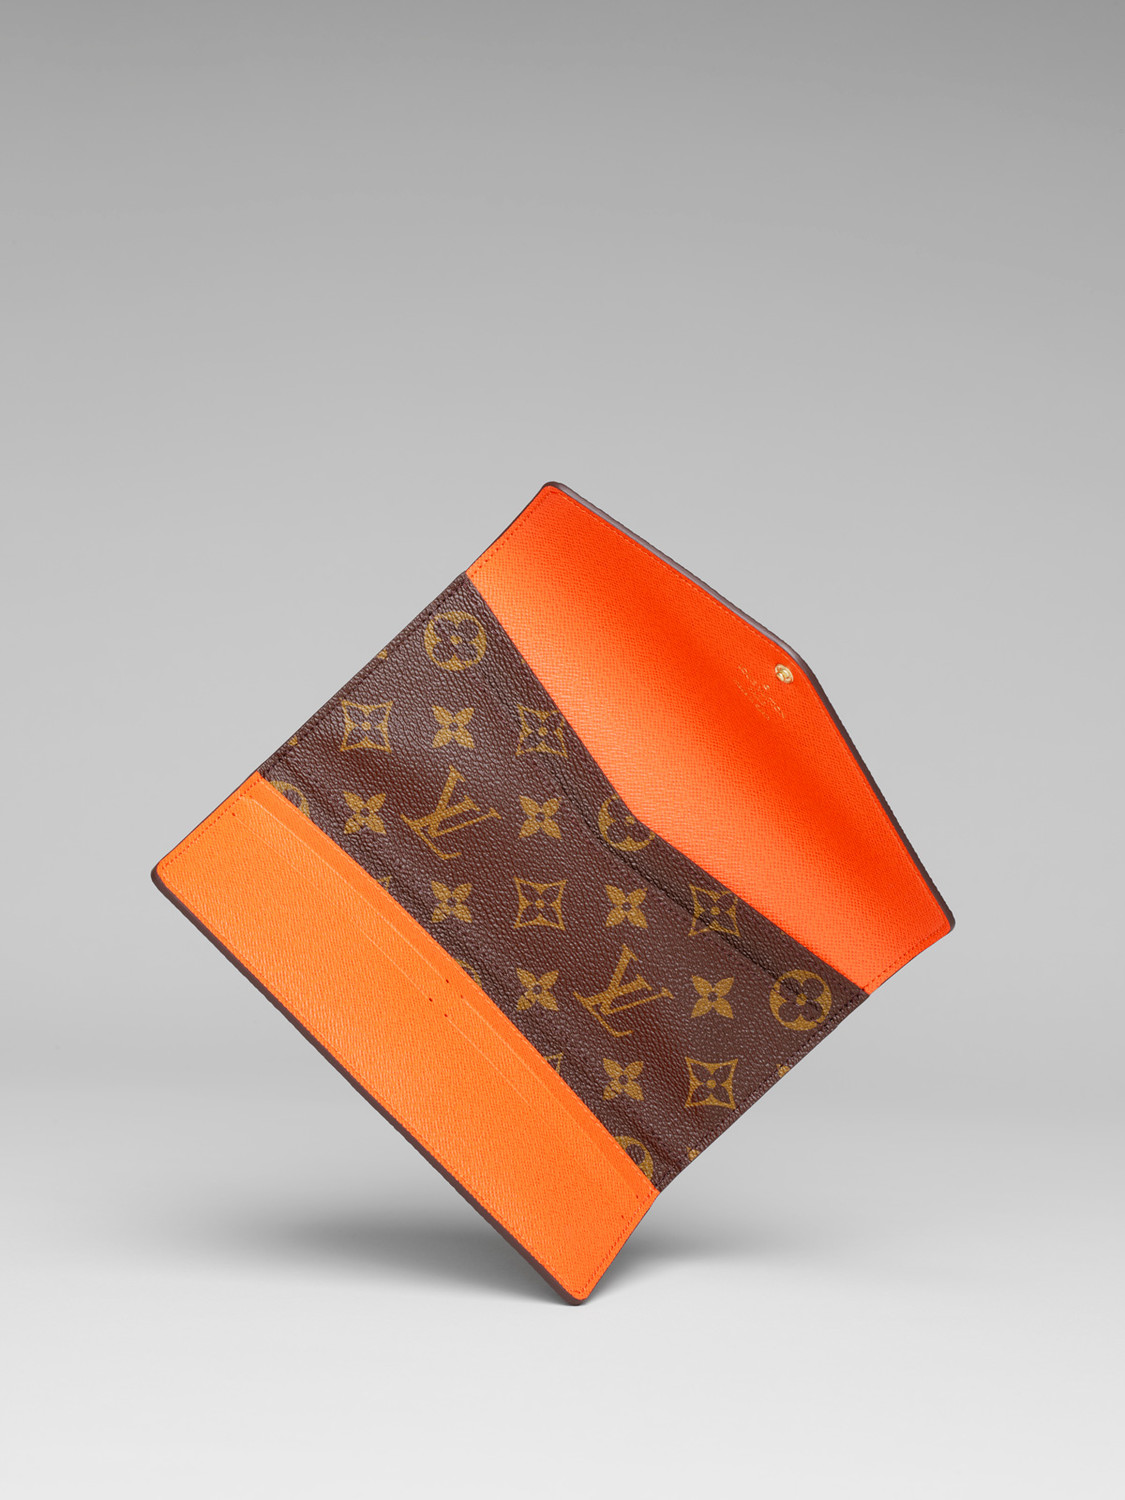 Louis Vuitton, shot by Andje Peters - © artifices